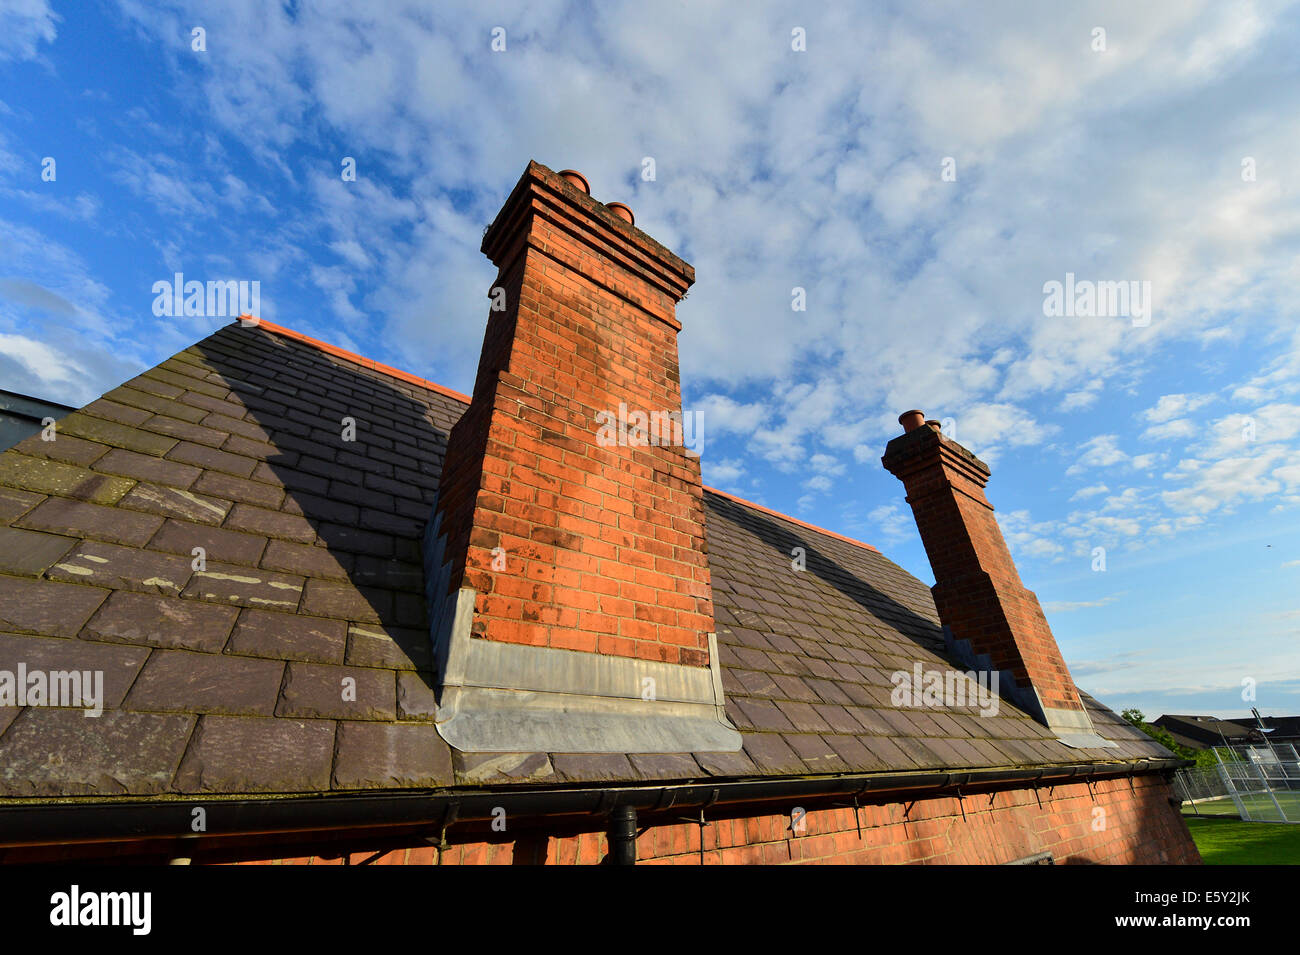 Tall Red Brick Solid Fuel House Chimney And Blue Sky, Derry, Londonderry,  Northern Ireland